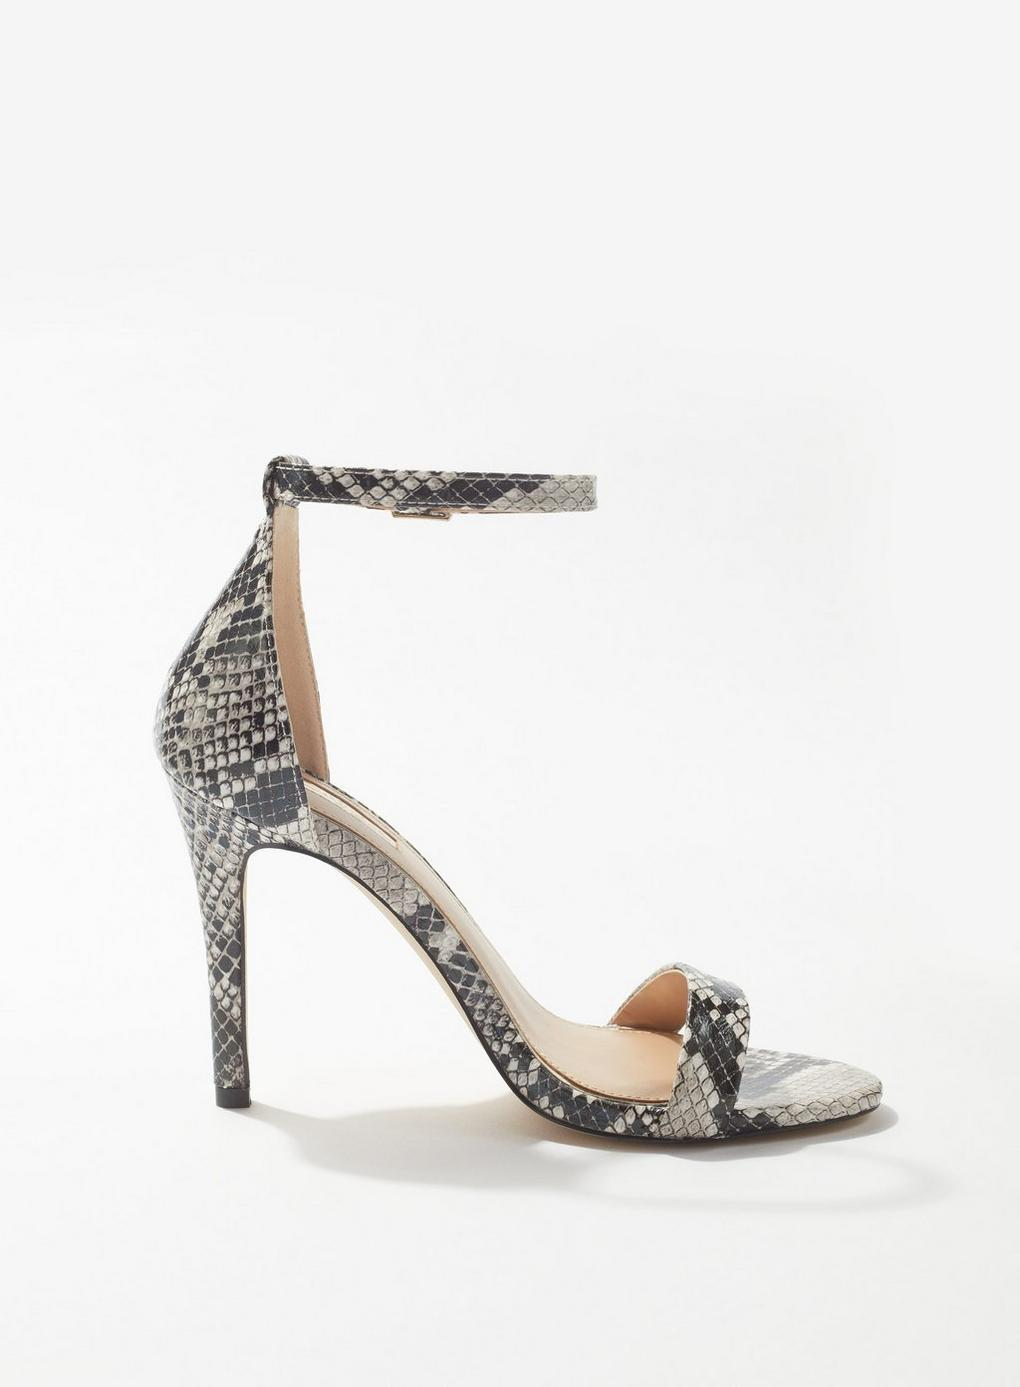 8da4672a2fd Lyst - Miss Selfridge Harley Grey Barely There Sandals in Gray